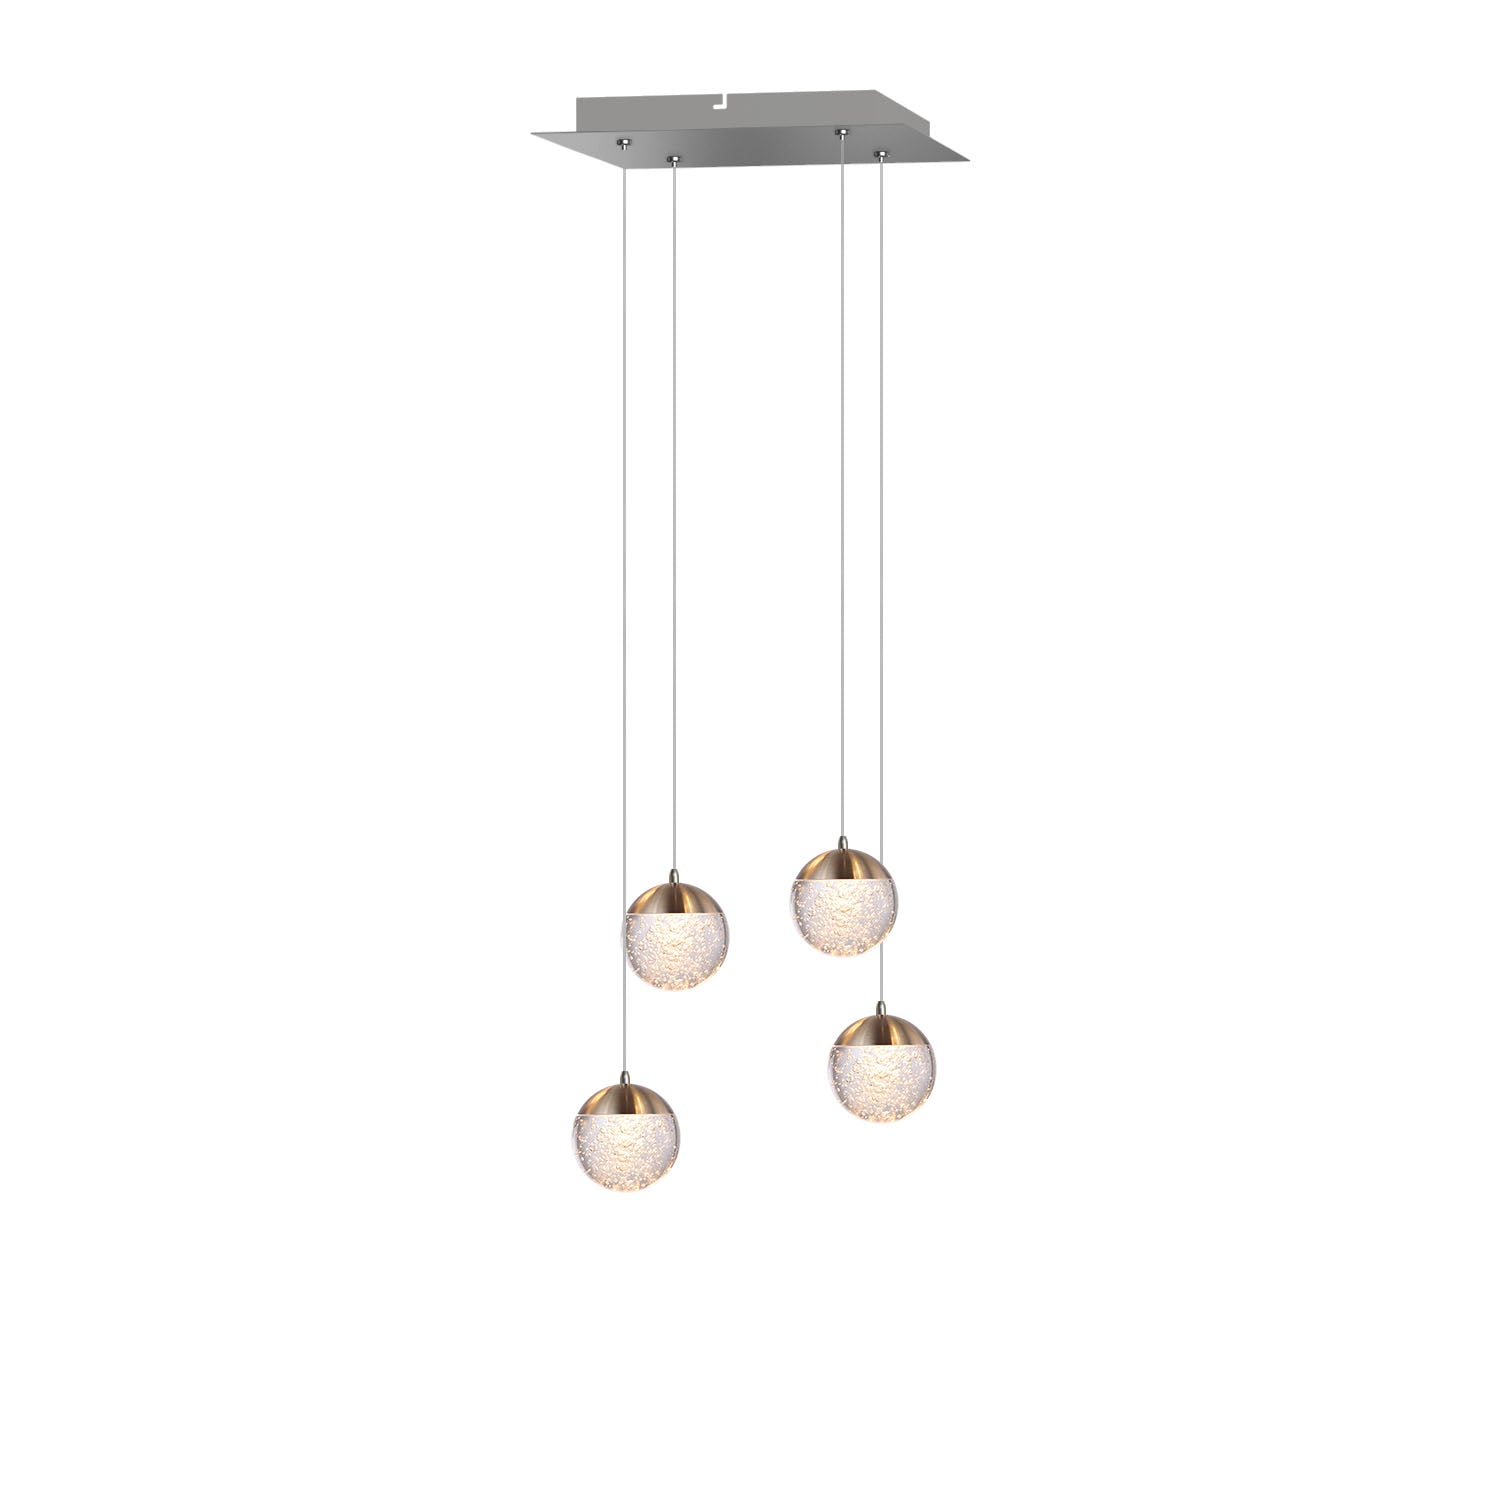 Galaxy 4-light LED mini pendant